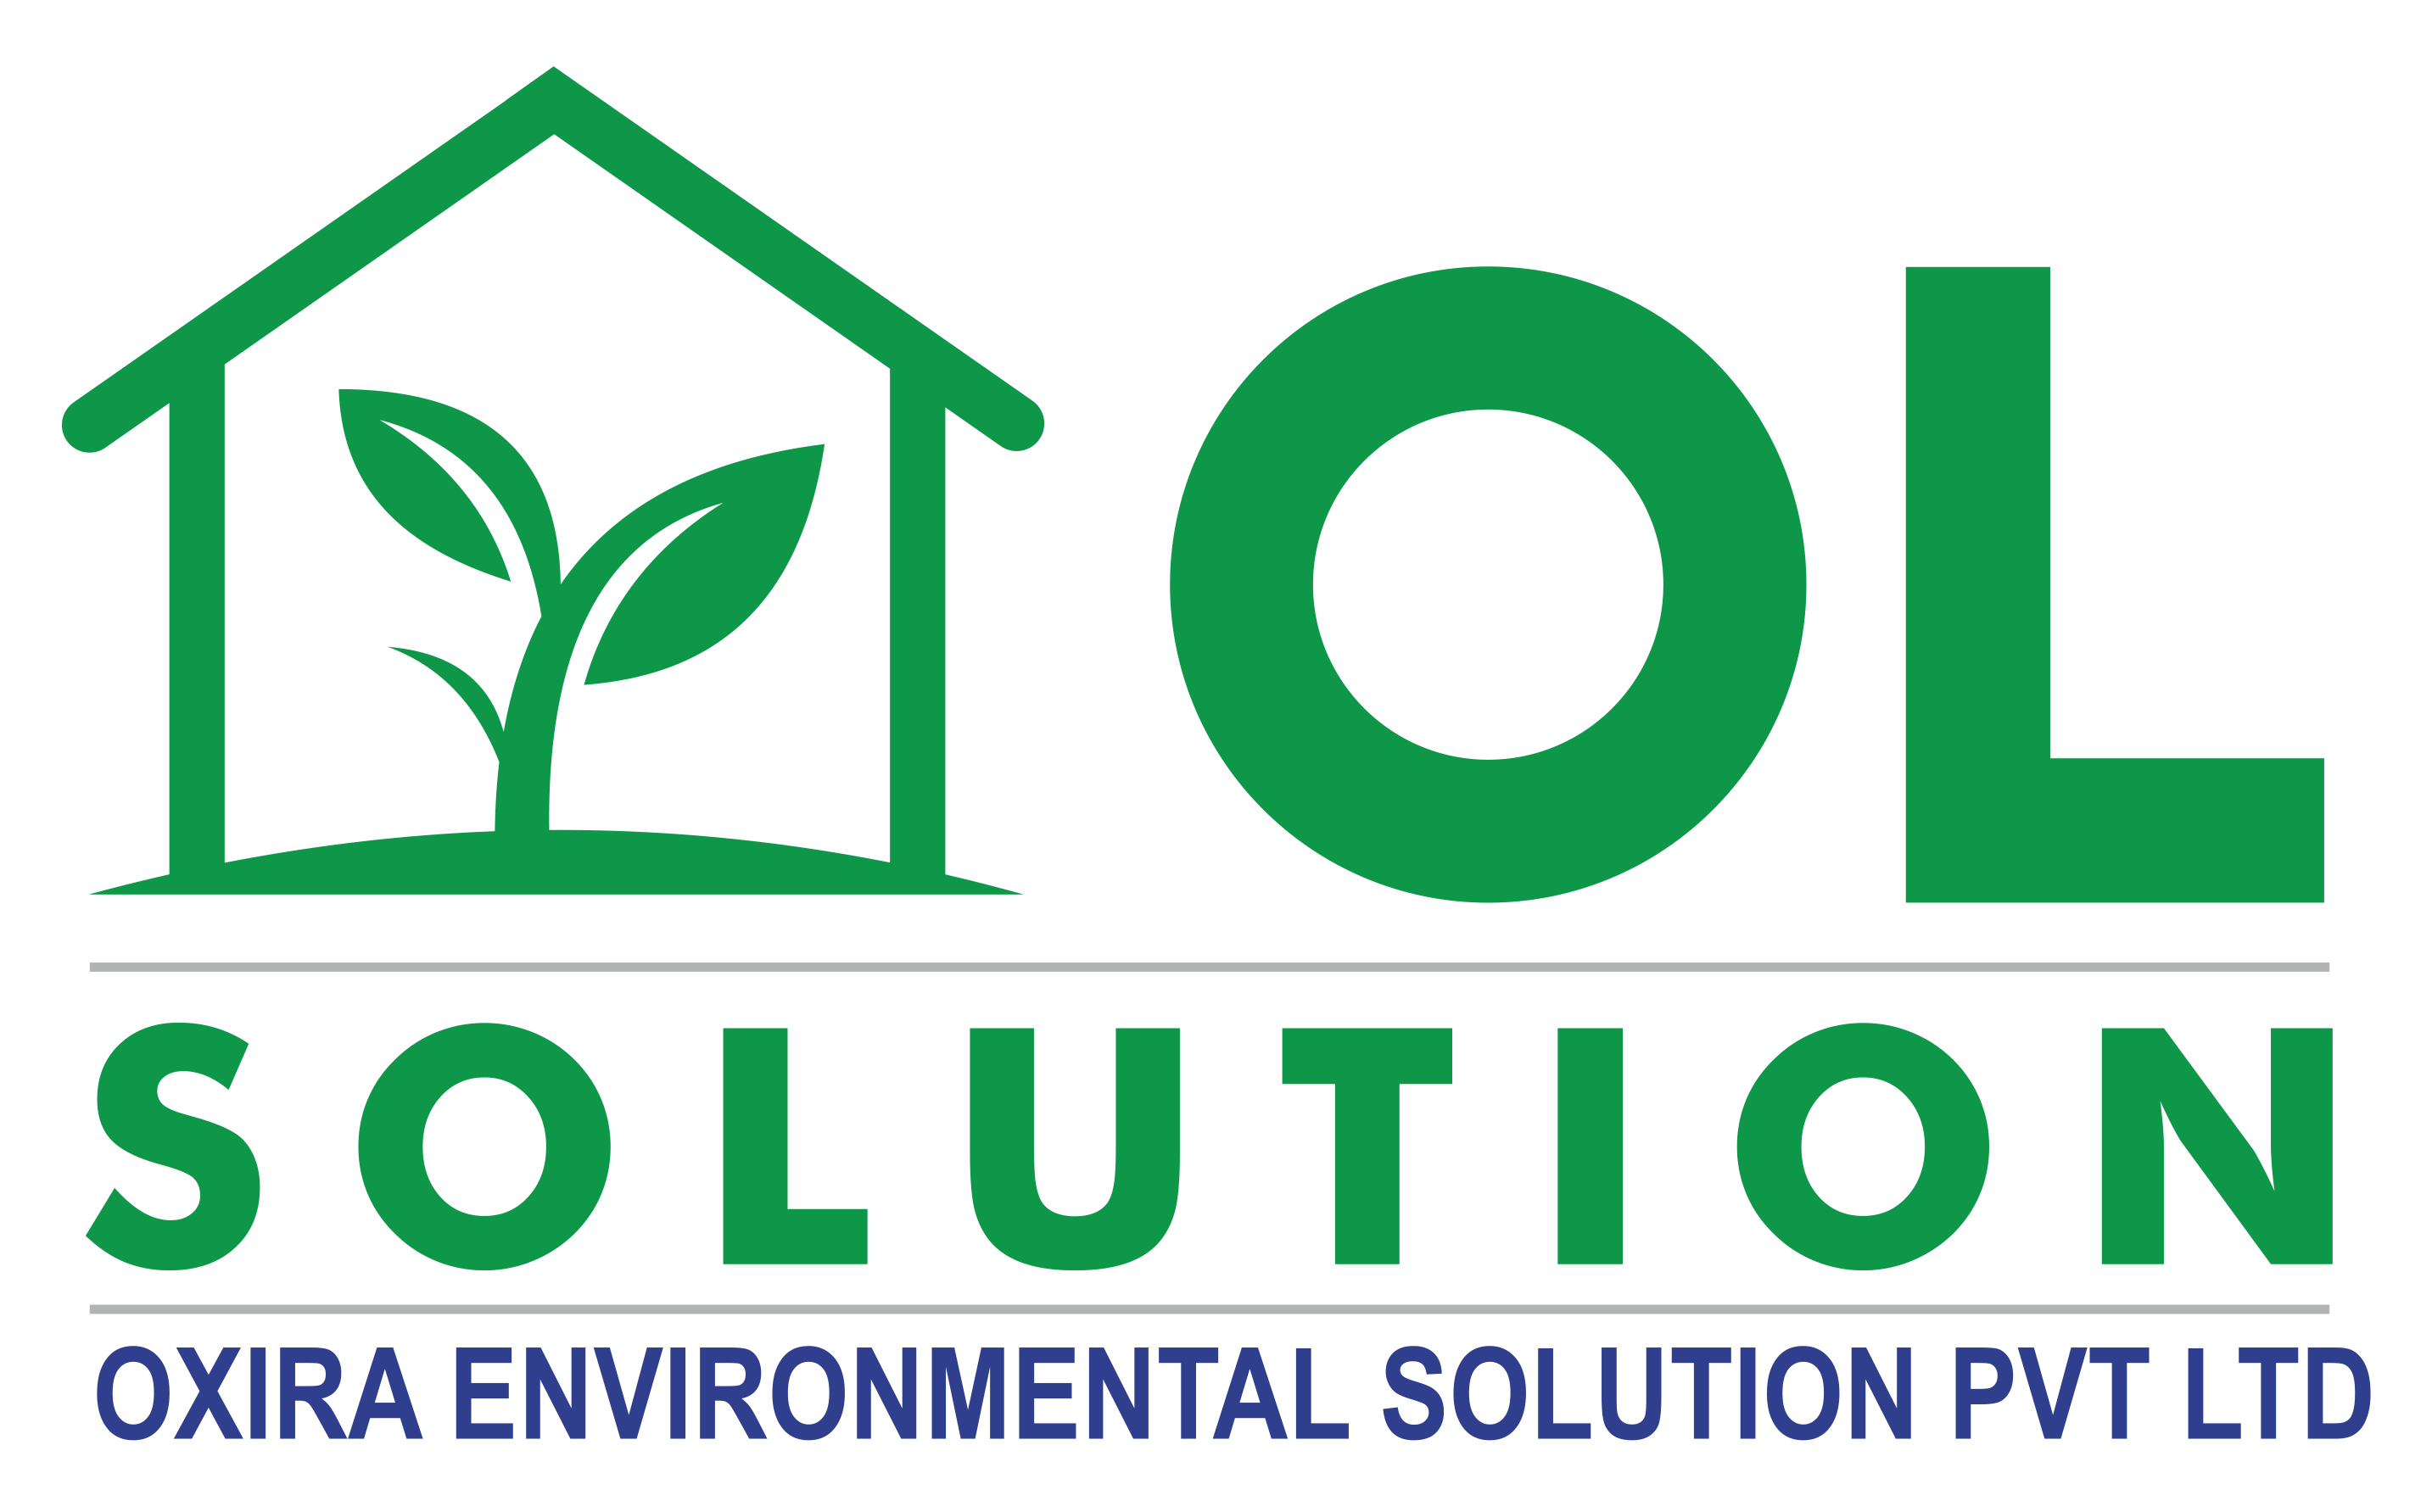 Oxira Environmental Solution Pvt. Ltd.